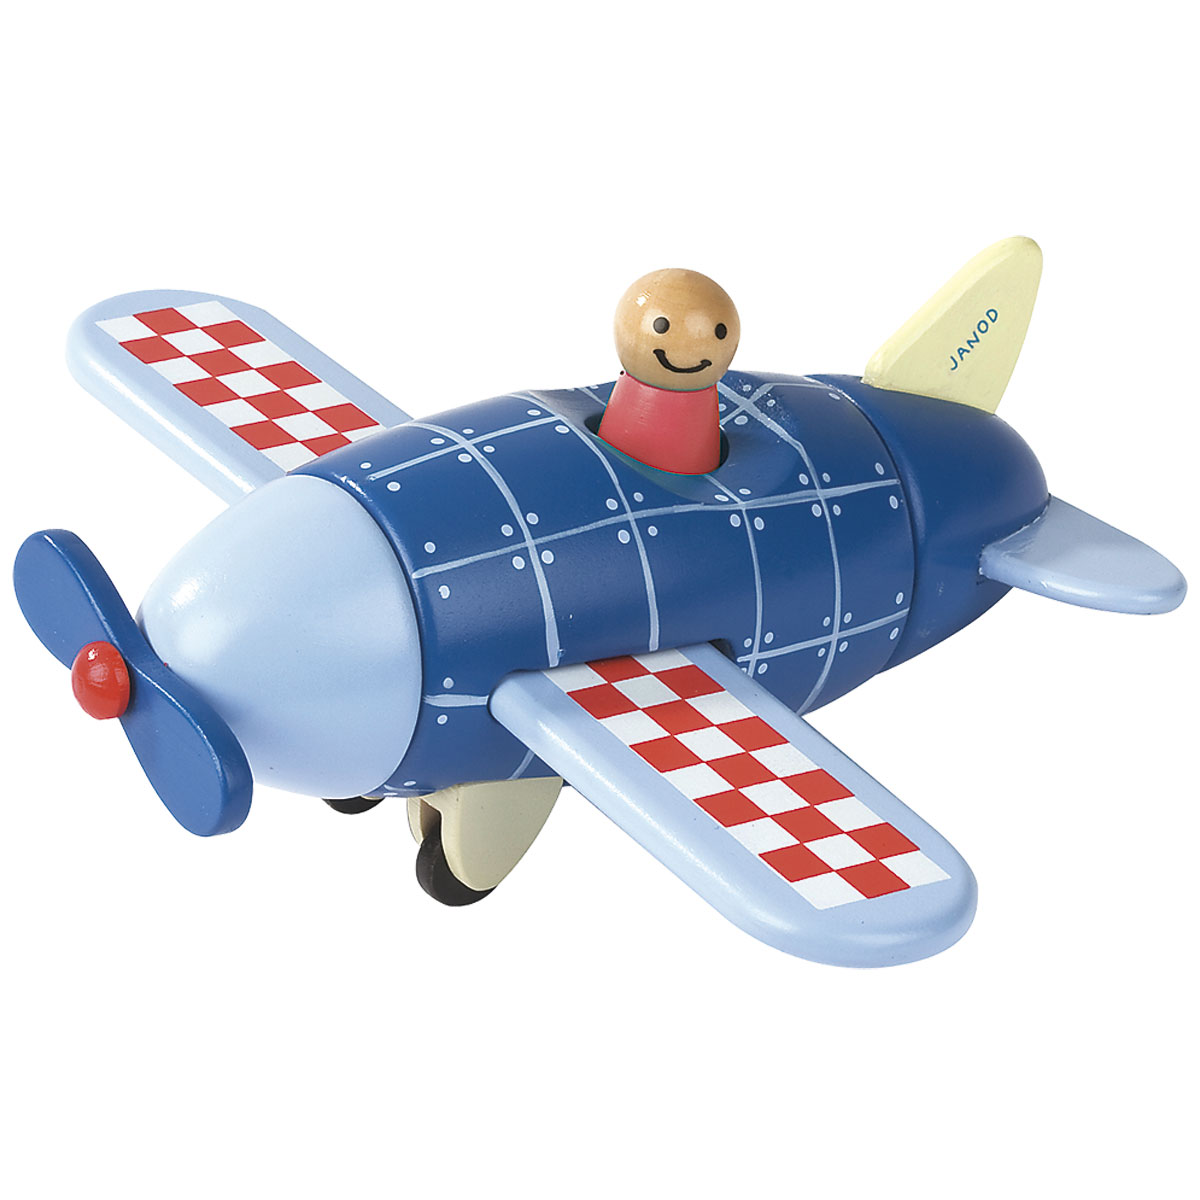 Magnetic Aeroplane Janod Magnetic Puzzles